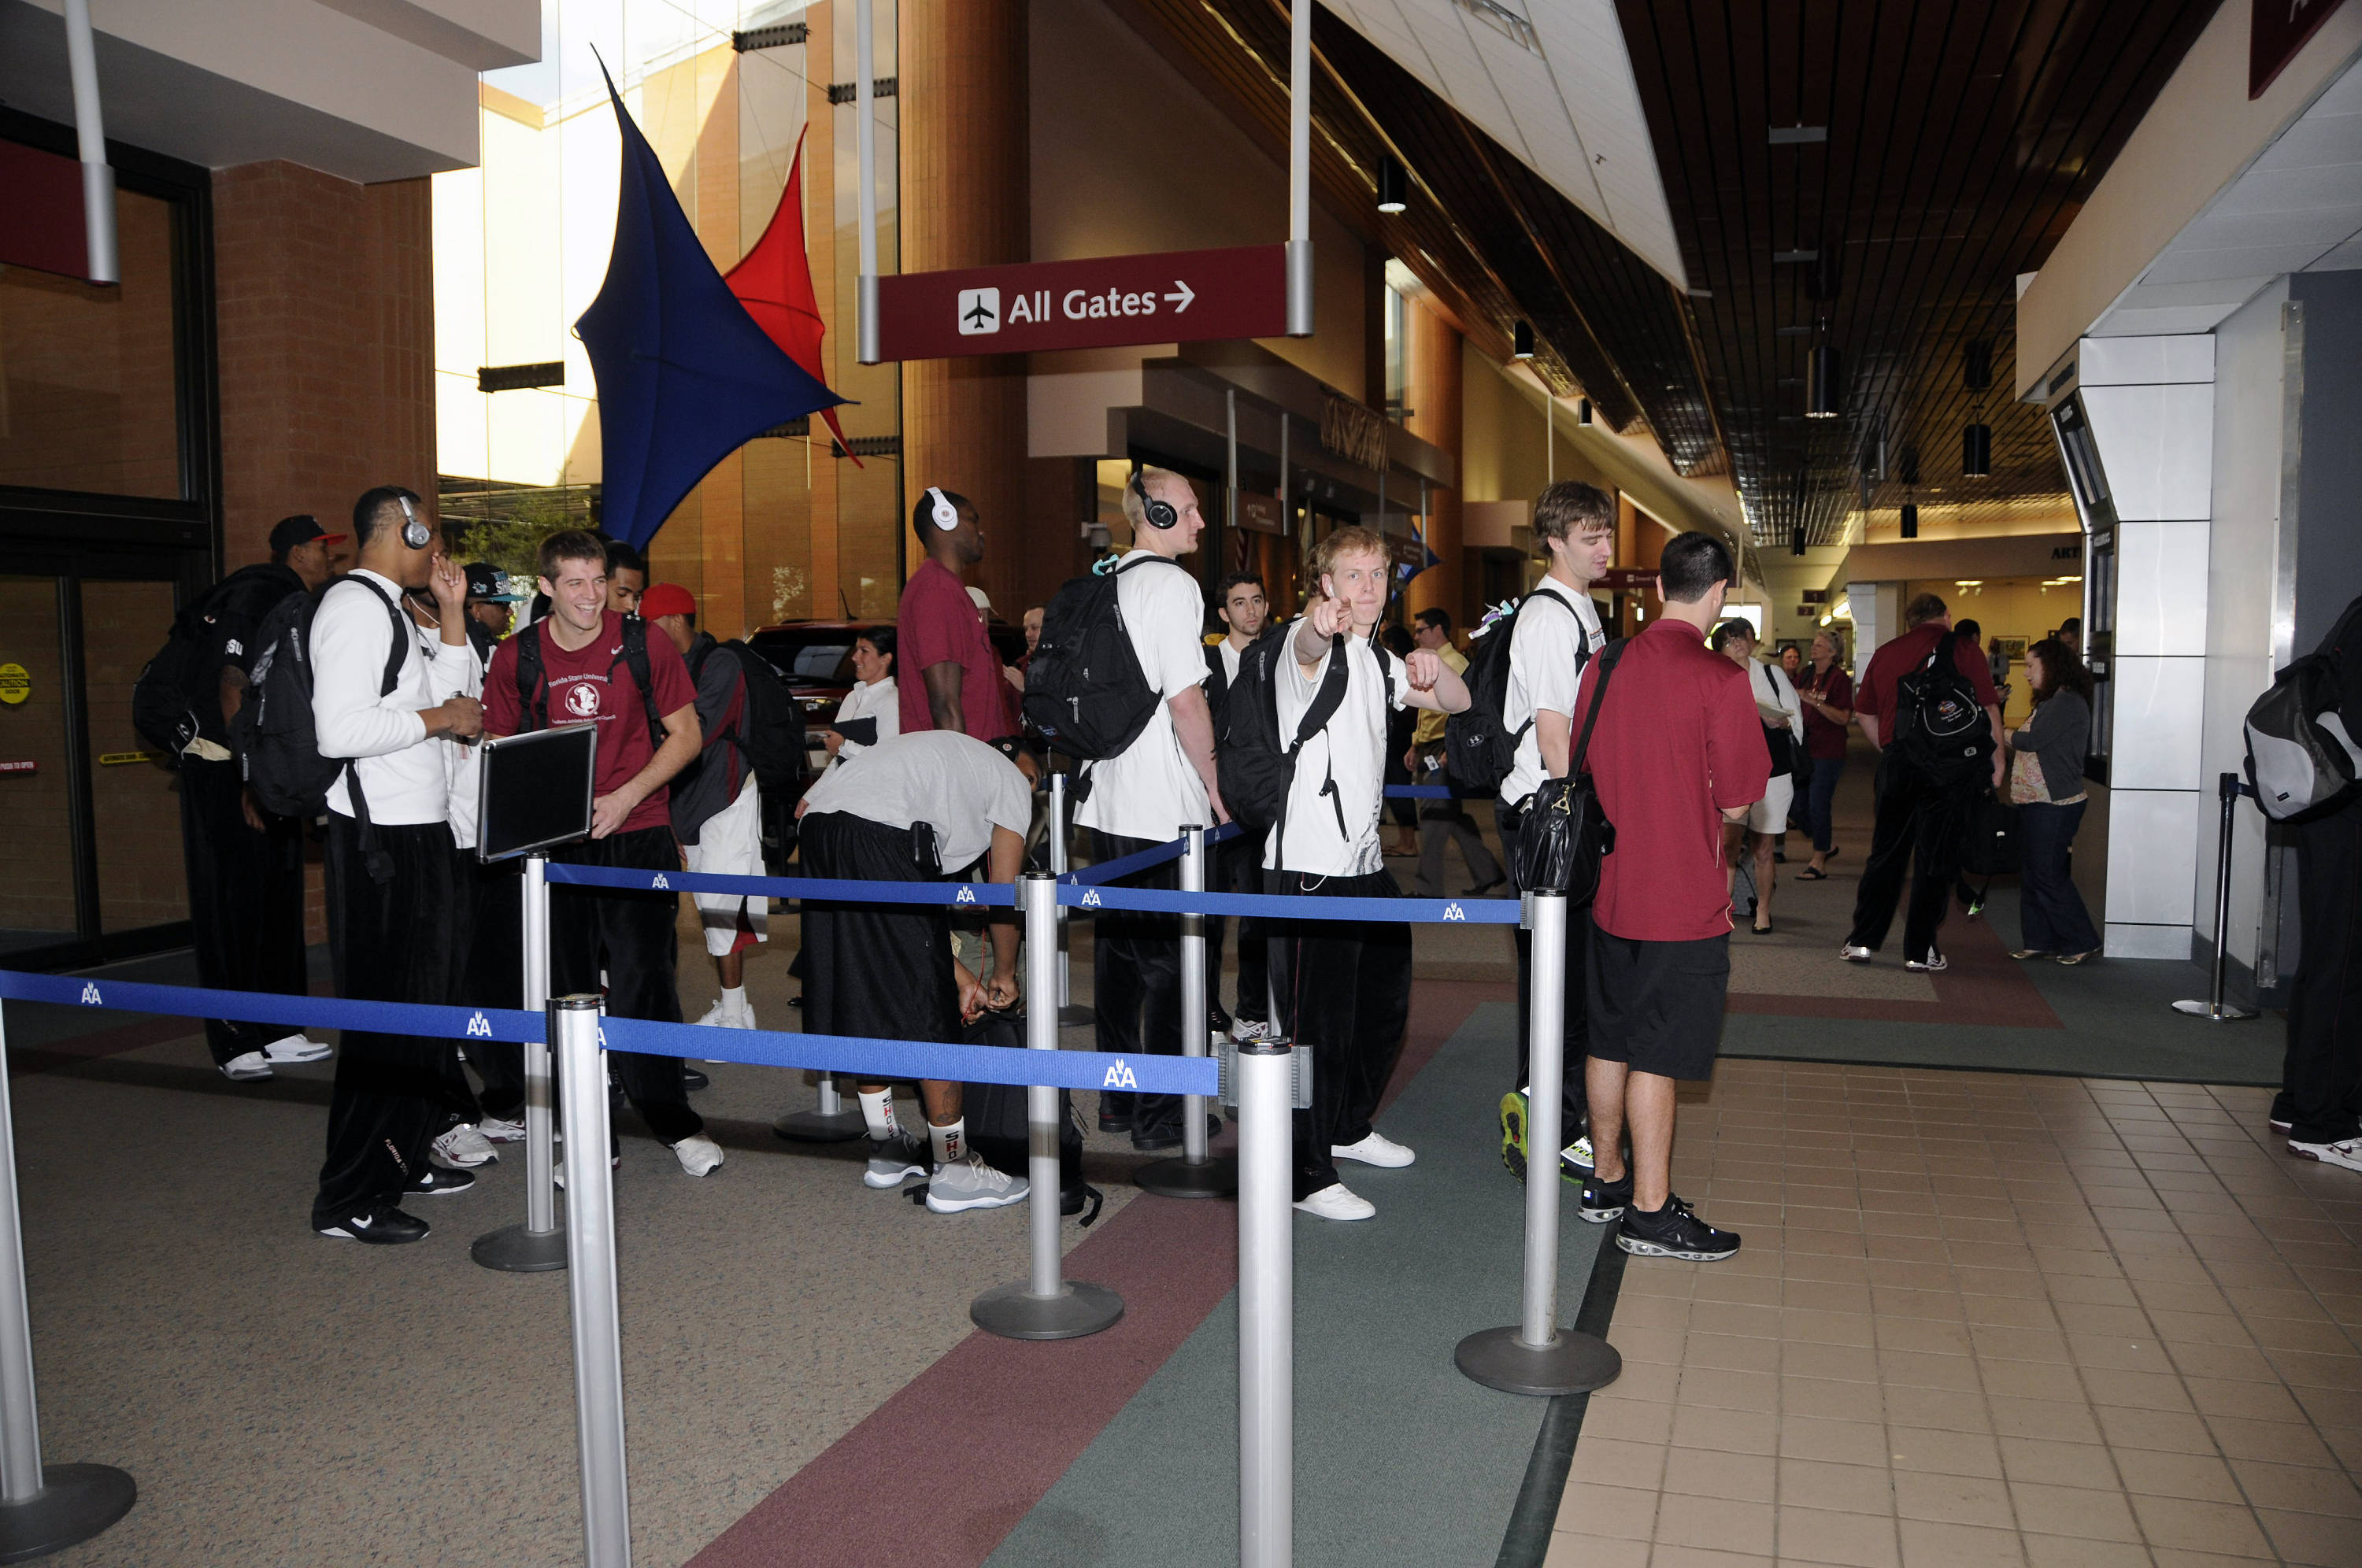 Florida State players go through security at the Tallahassee Airport